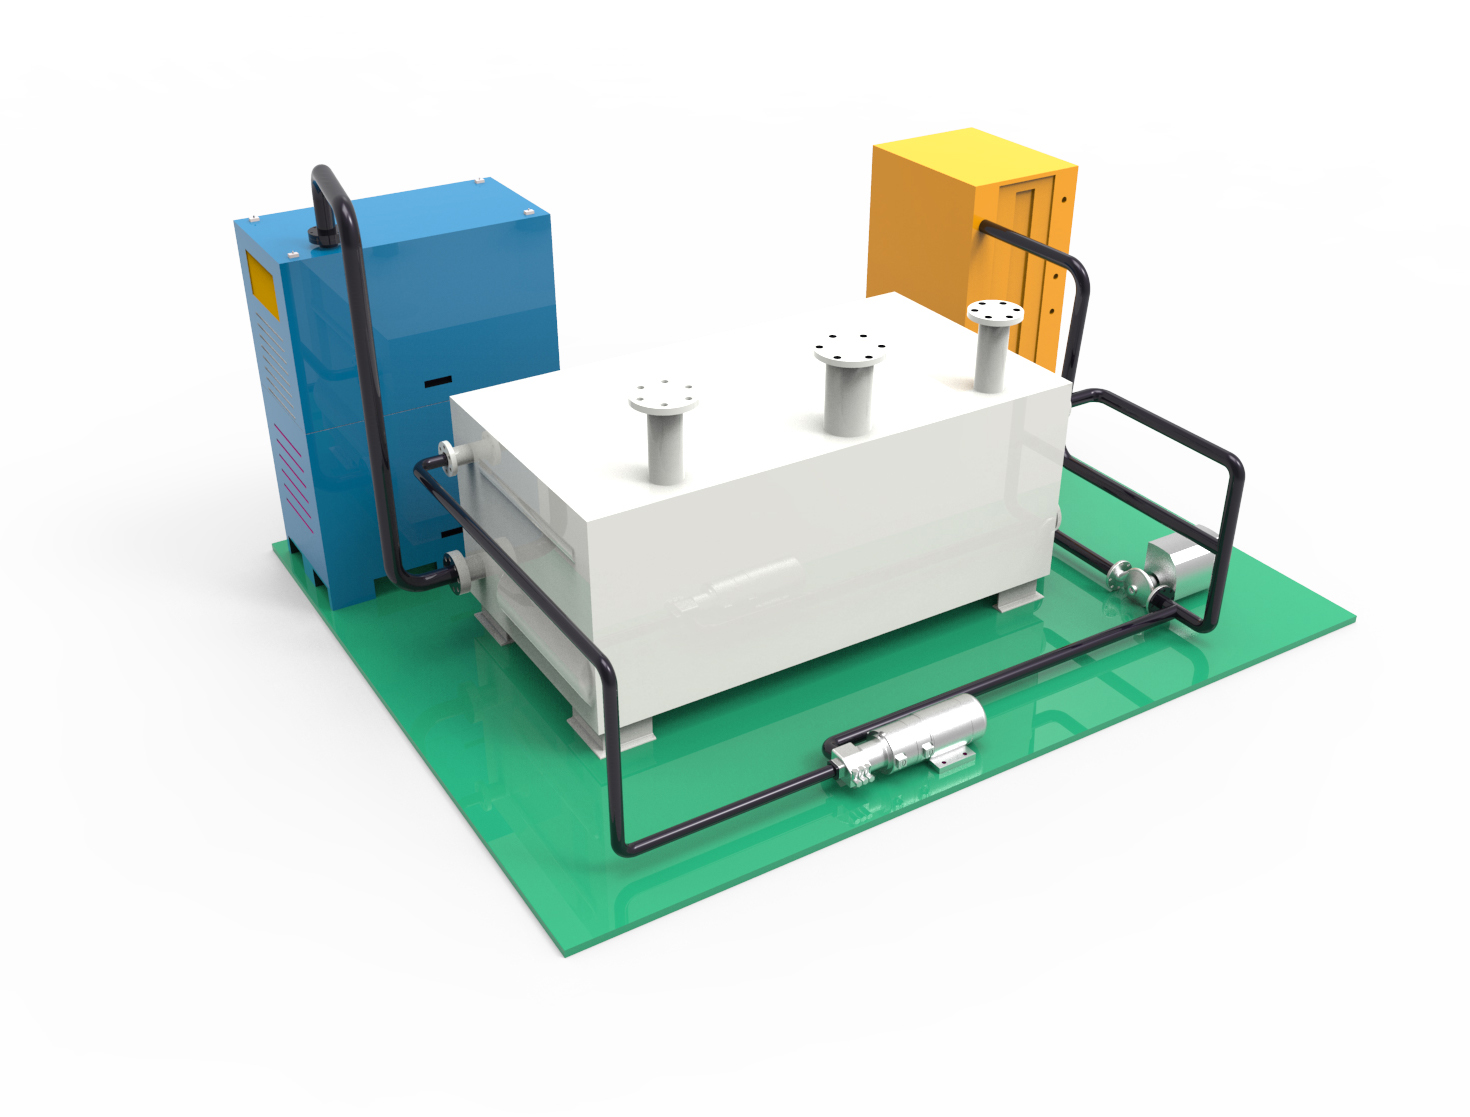 Cogeneration Power Plants - Thermal storage adds flexibility, efficiency, and reliability.